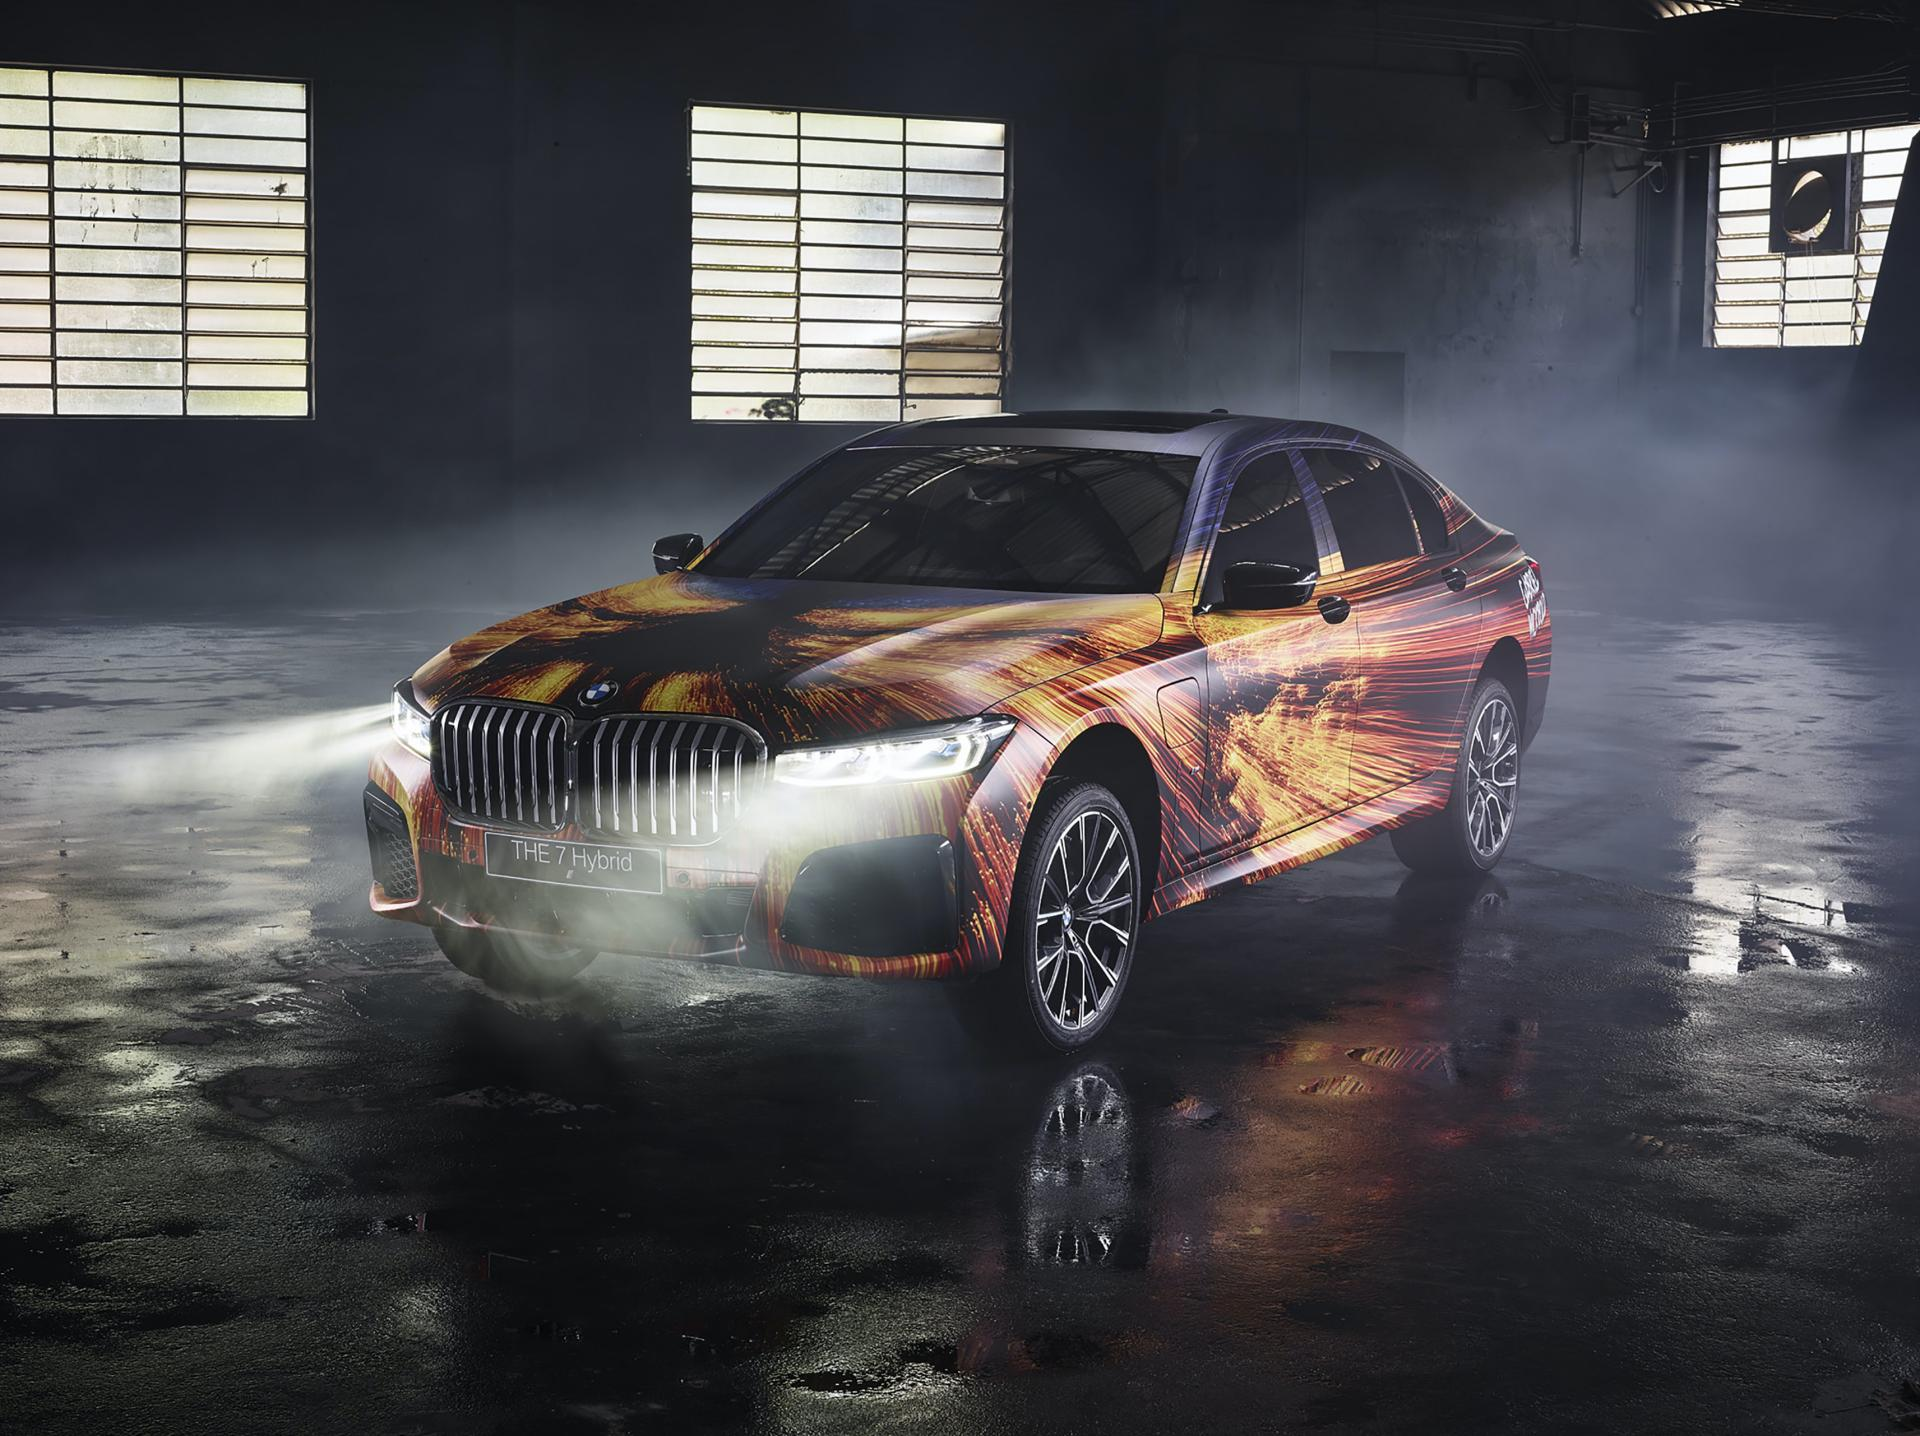 BMW-7-Series-745Le-M-Sport-Gabriel-Wickbold-Car-Art-3